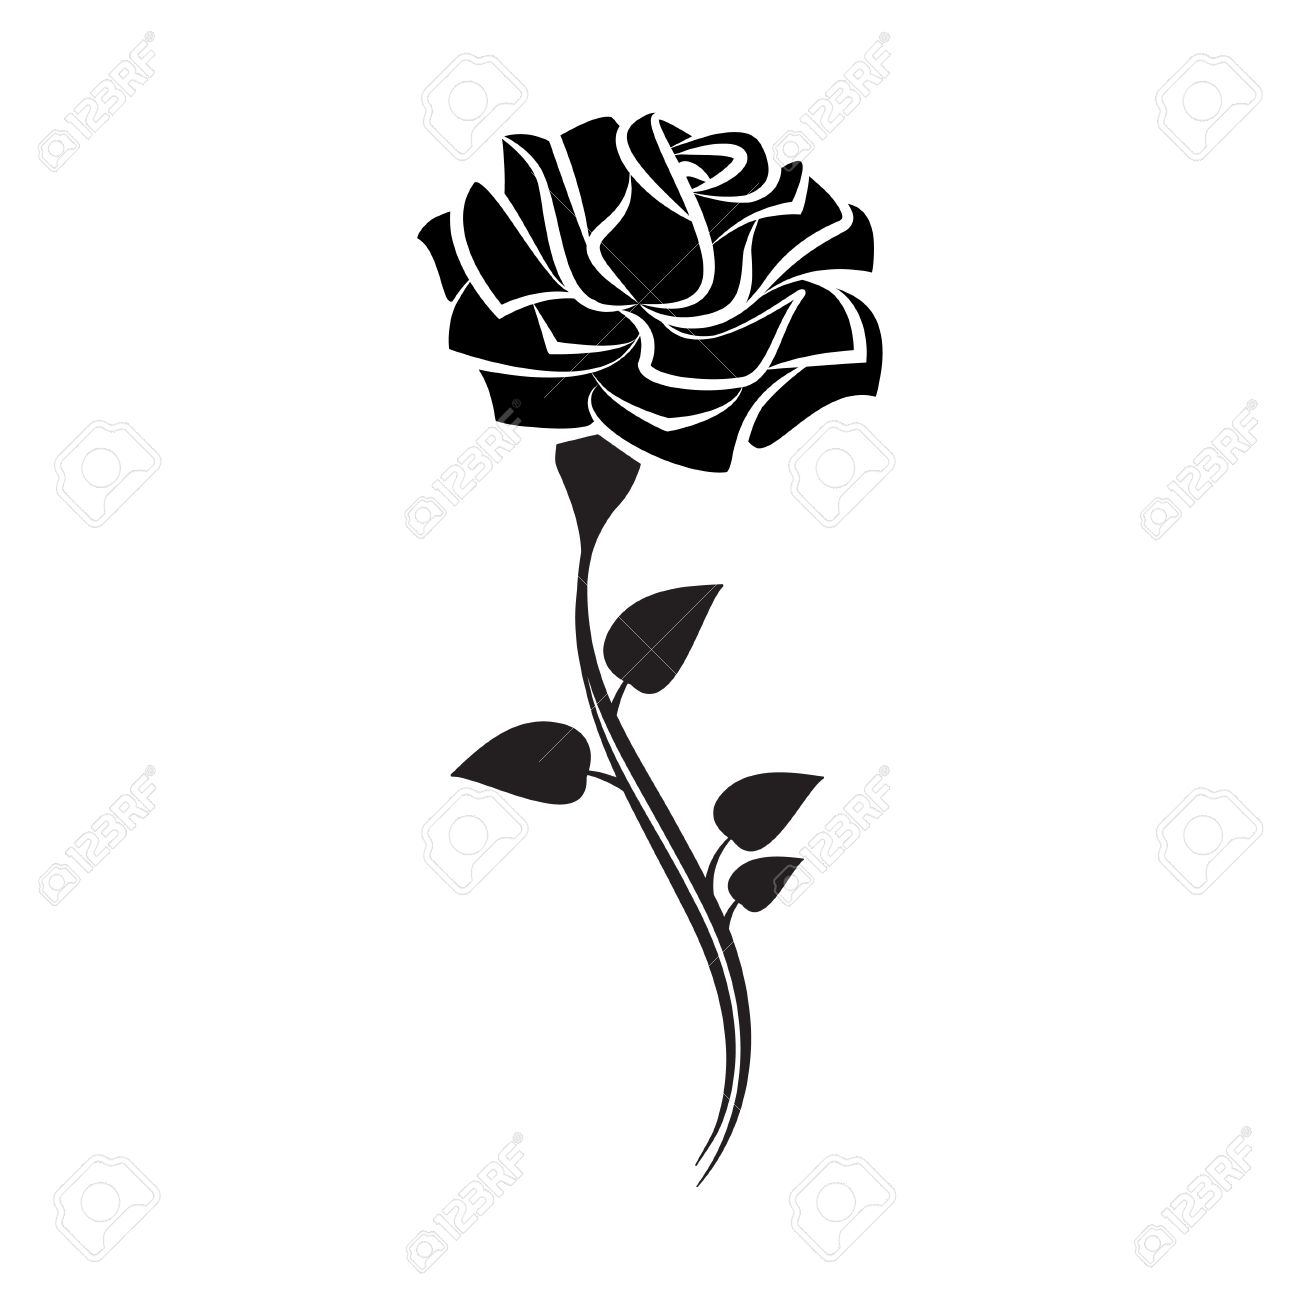 black silhouette of rose with leaves tattoo style rose vector rh 123rf com rose vector clip art rose vector file